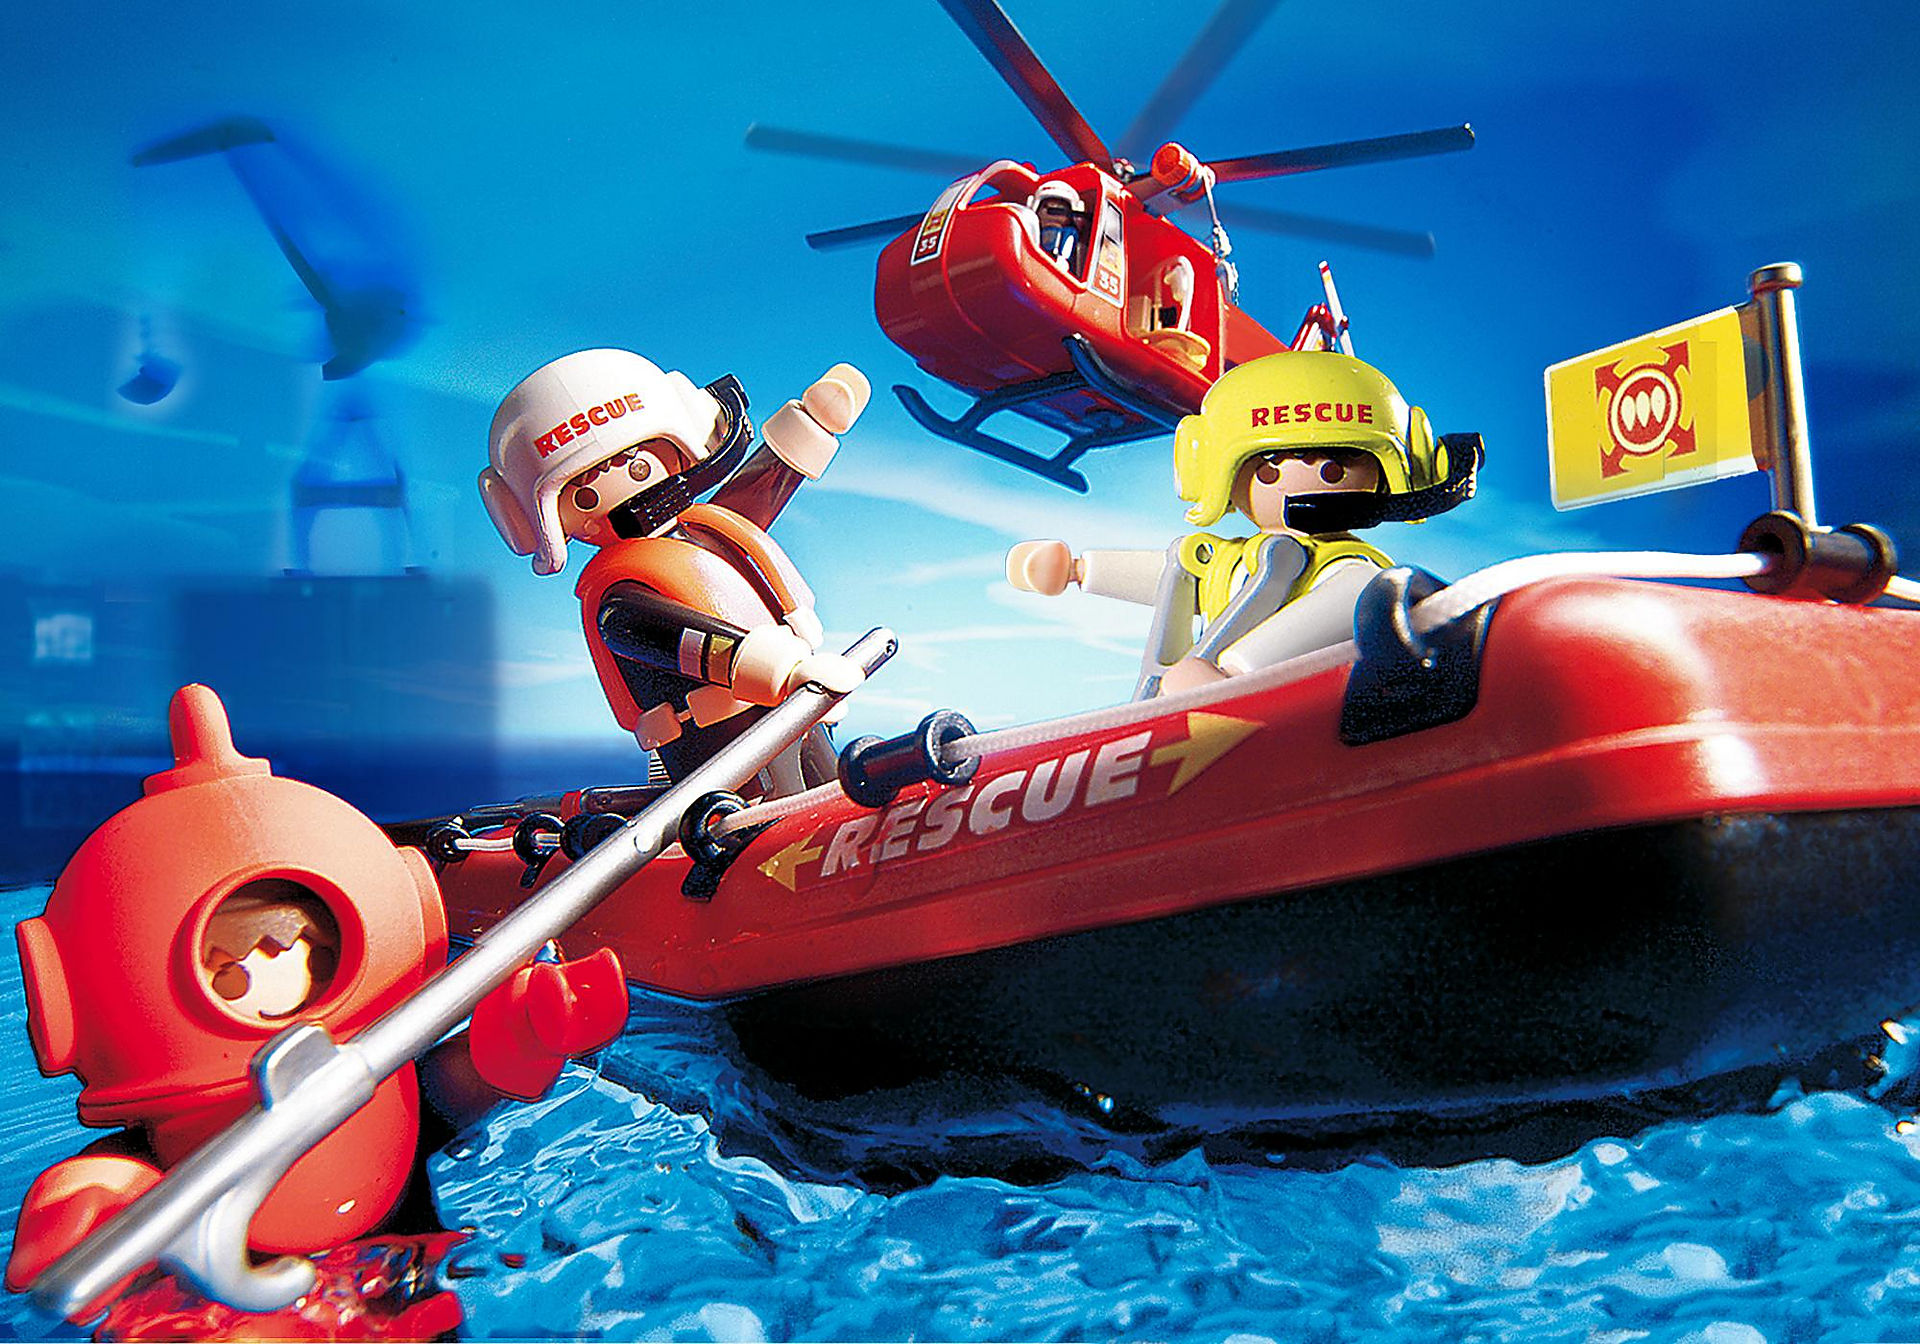 http://media.playmobil.com/i/playmobil/4428_product_extra5/SOS-Helikopter/Rettungsboot